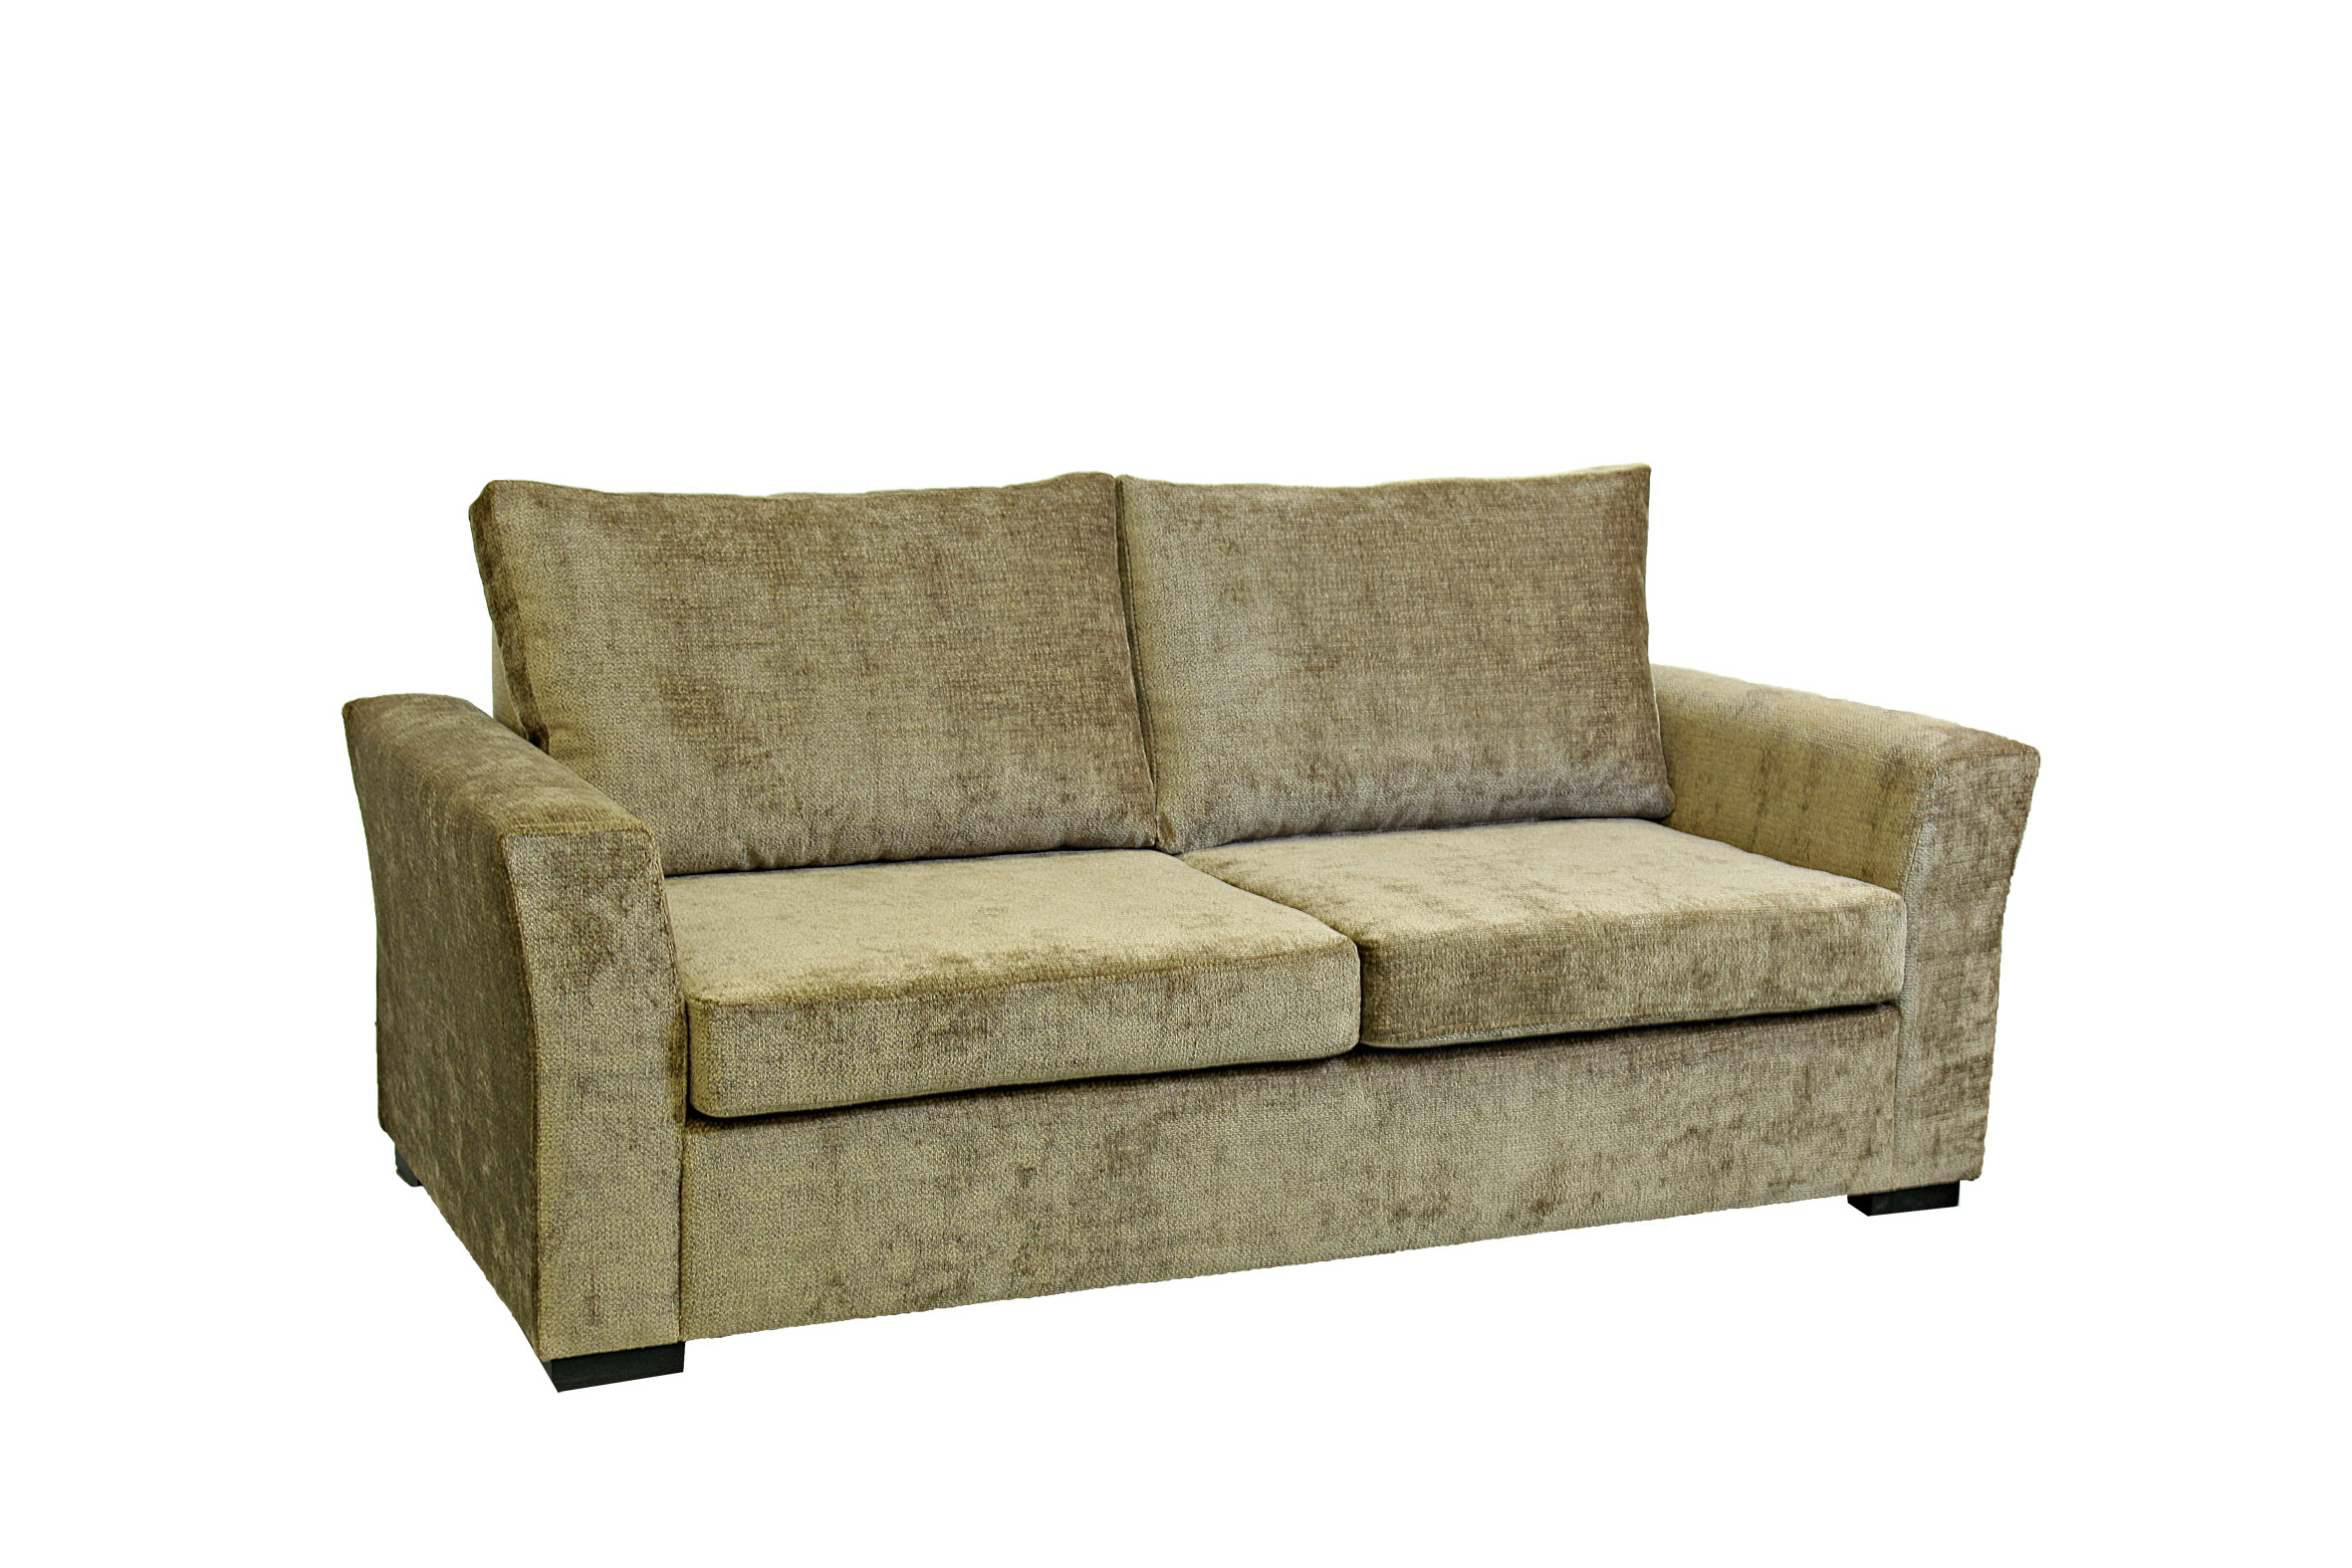 Australian Made Sofas Chilli Pip Furniture Custom Made Lounges Manufacturer Sofas